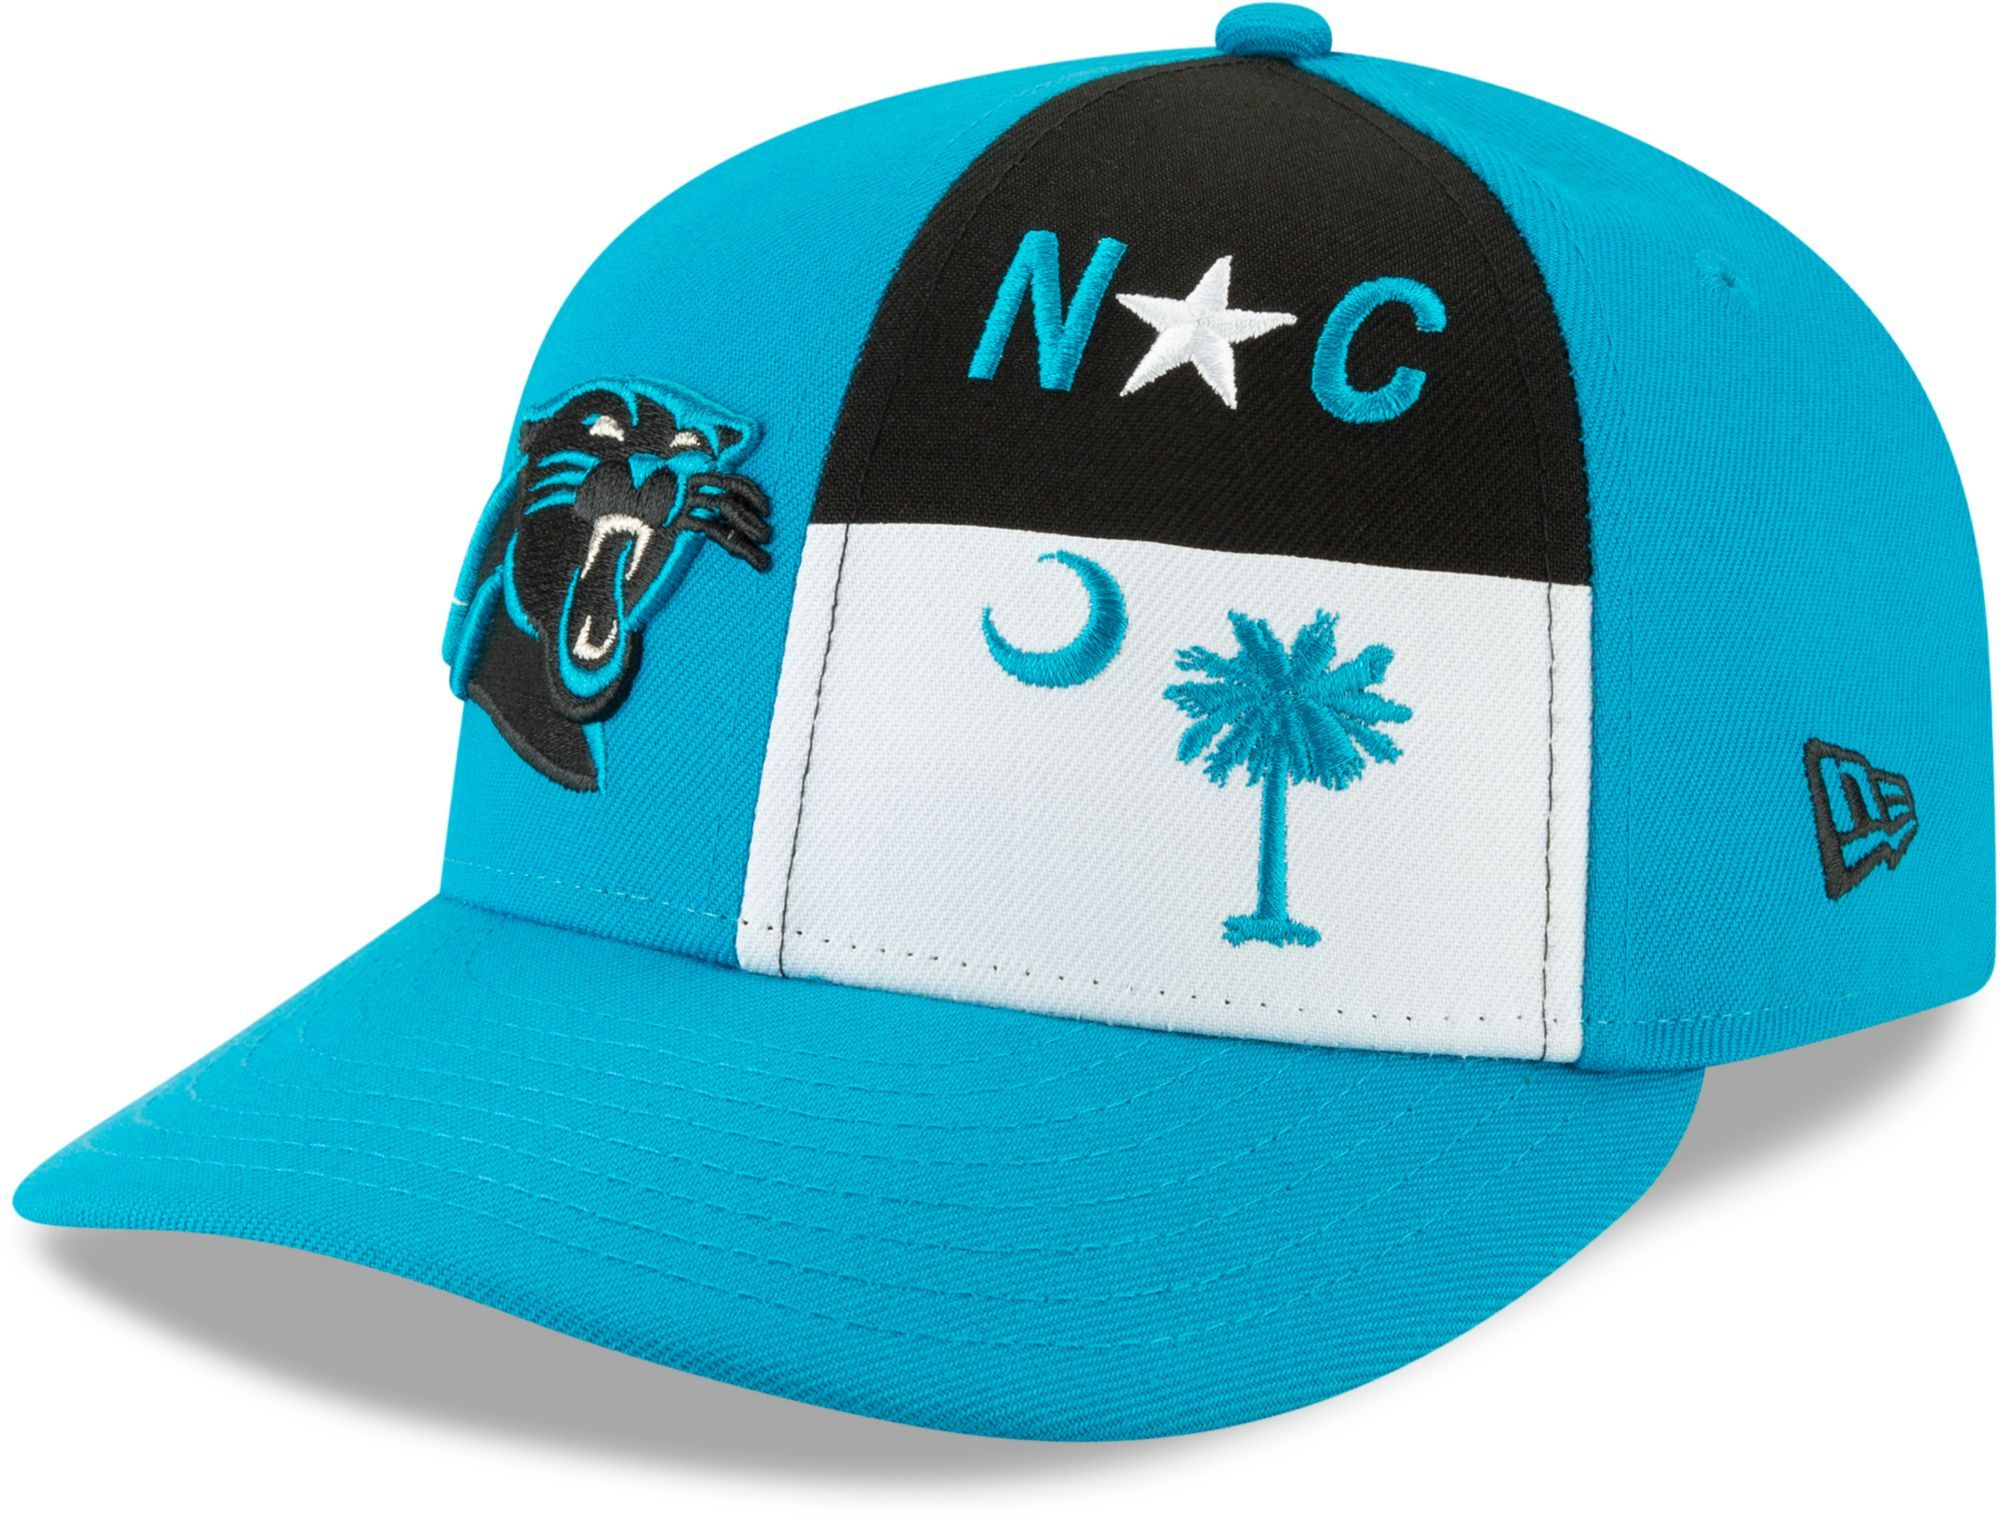 buy online d7b4c aa006 New Era Men s Carolina 2019 Draft 59Fifty Fitted Blue Hat, Size  7 1 8, Team